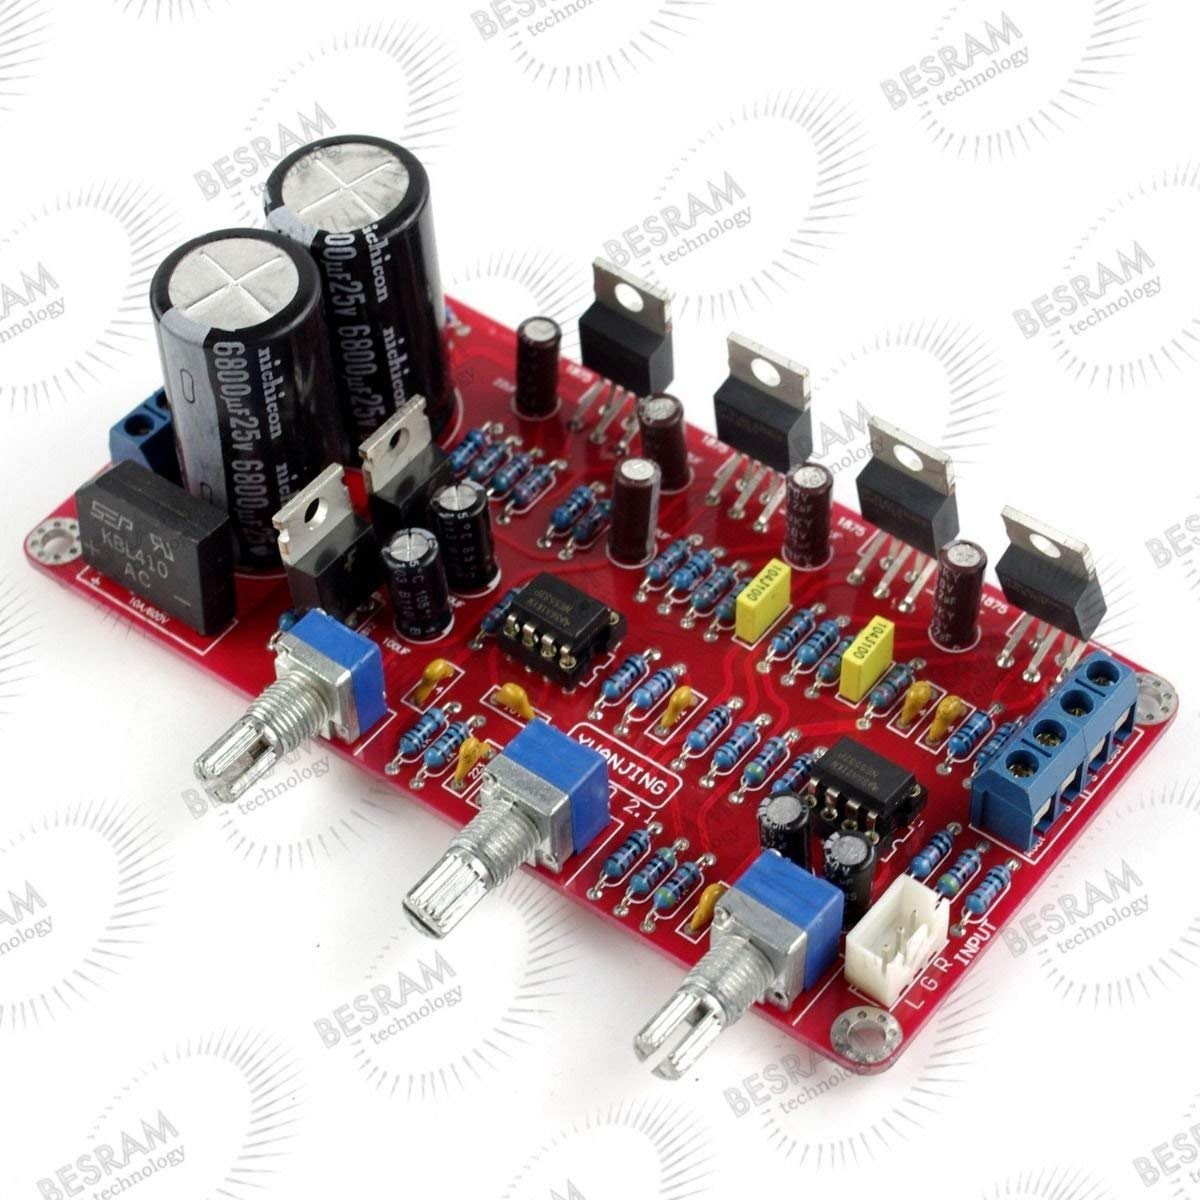 Cheap Ic Lm T615s3 Find Deals On Line At Alibabacom Lm358n Lm358p Sop8 Integrated Circuits Dual Operational Amplifiers Get Quotations Lm1875 Ne5532 25w2 50w Audio Subwoofer Amplifier Assembled Board